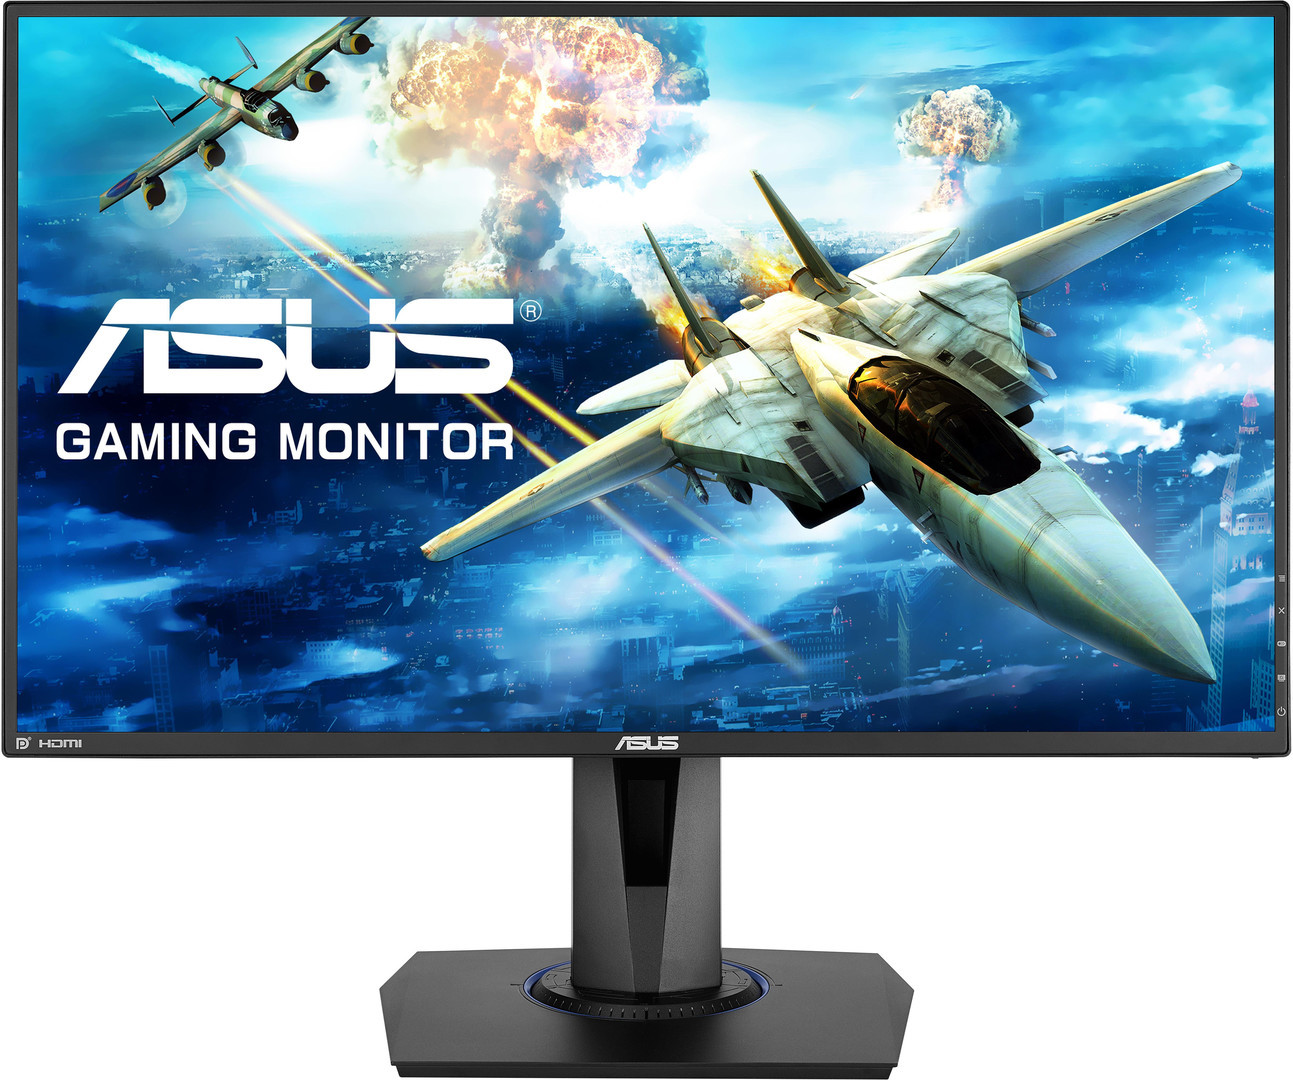 VG275Q Console Gaming Monitor